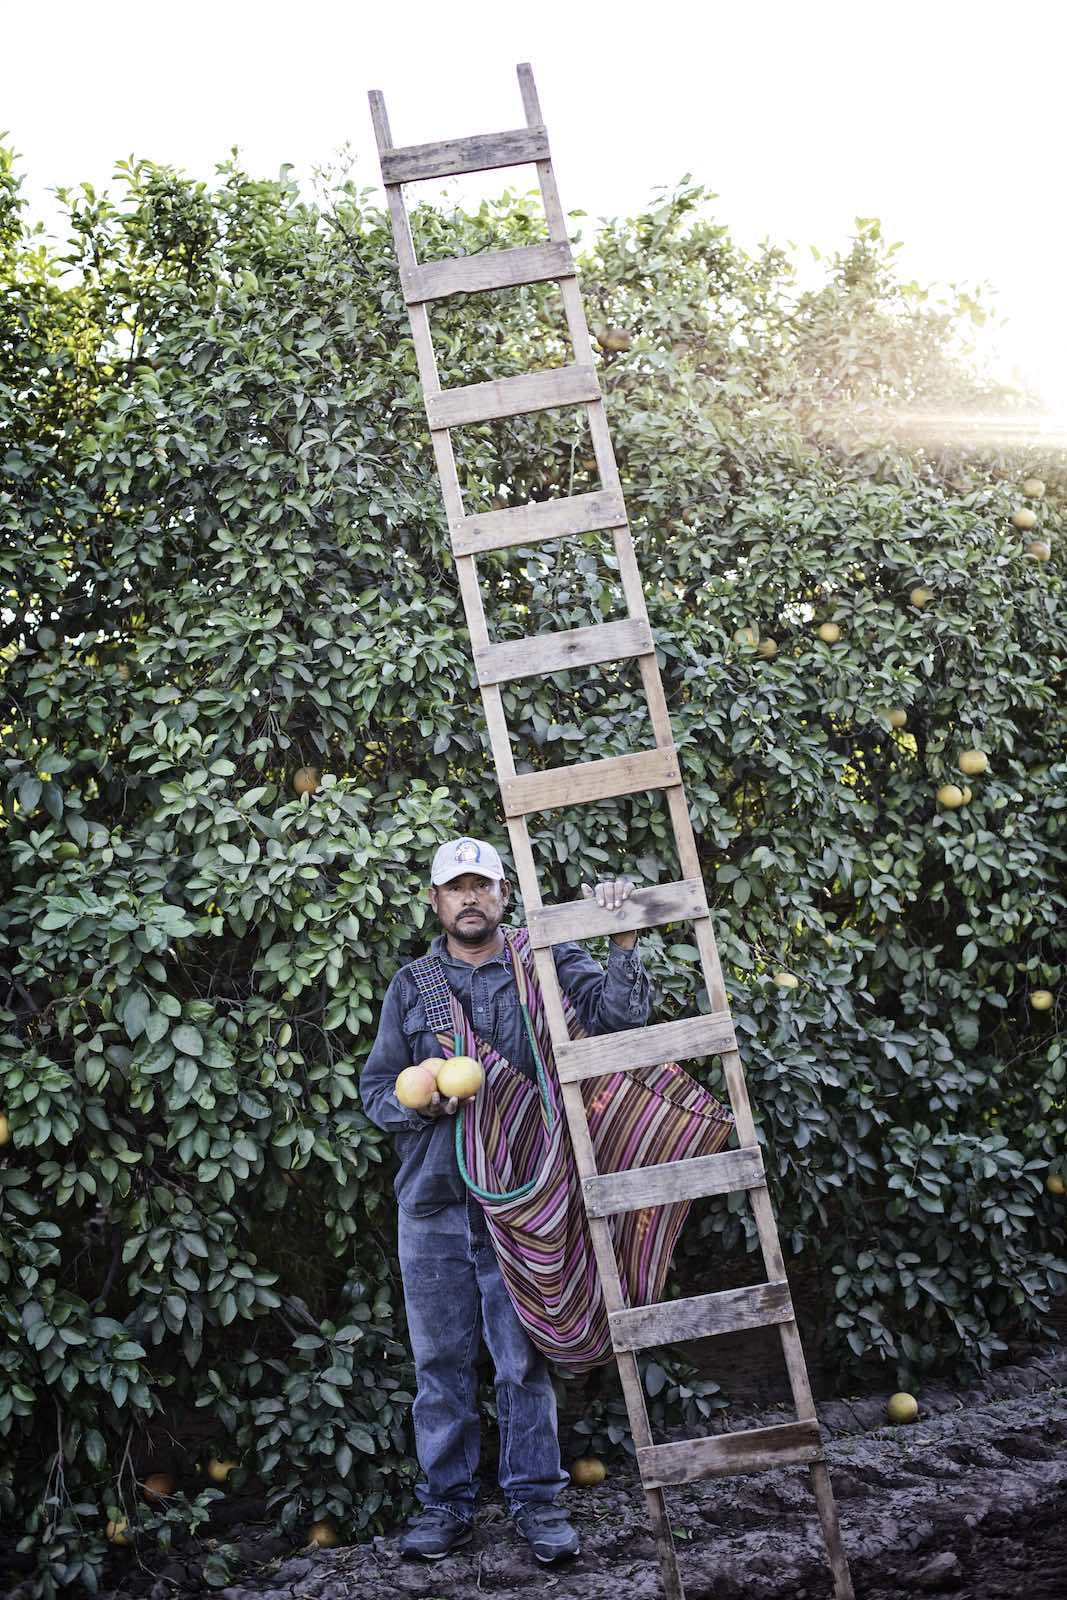 Jody Horton Photography - Grapefruit farmer hold a wood ladder and freshly picked grapefruits.